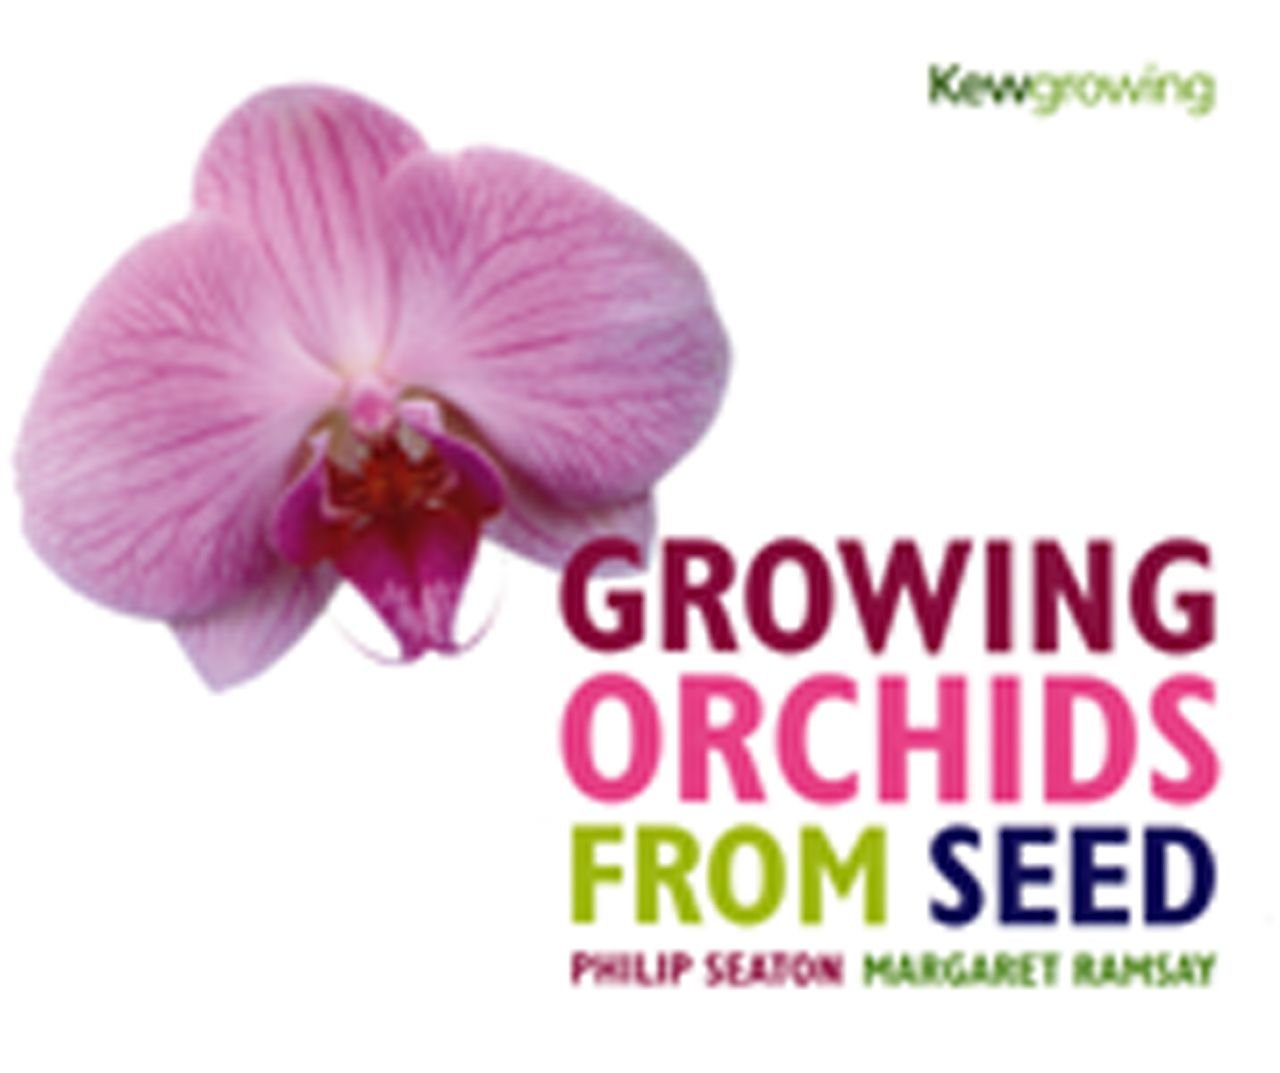 Growing Orchids from Seed: Philip Seaton, Margaret Ramsey: 9781842460917:  Amazon.com: Books